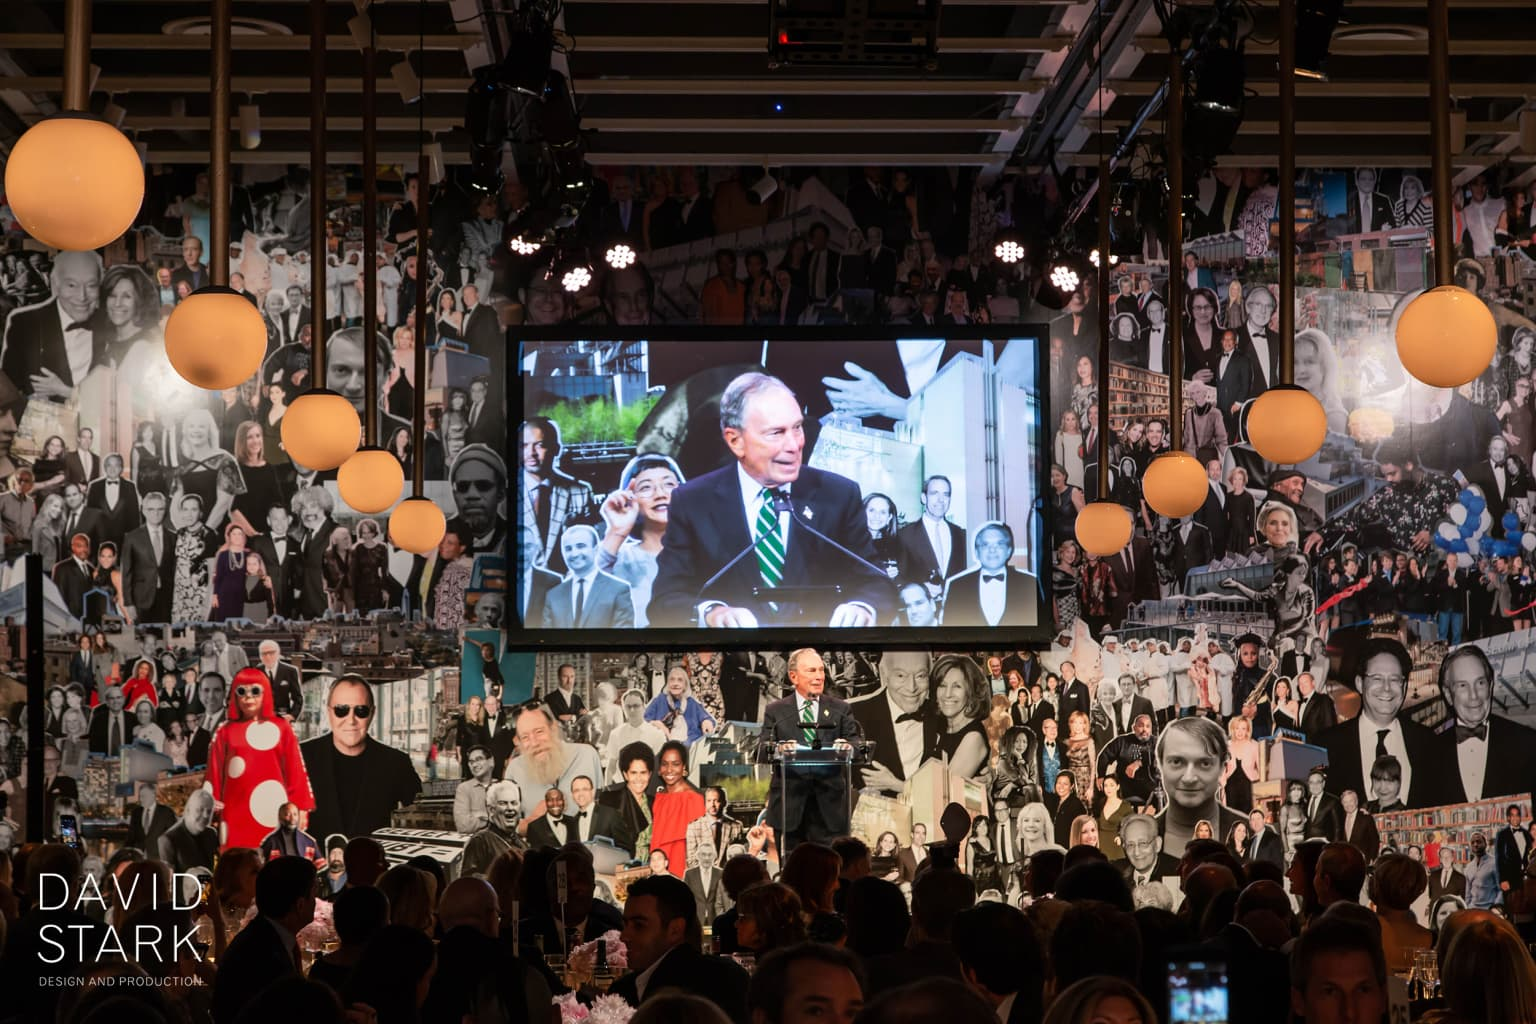 The Whitney Museum Gala and Studio Party